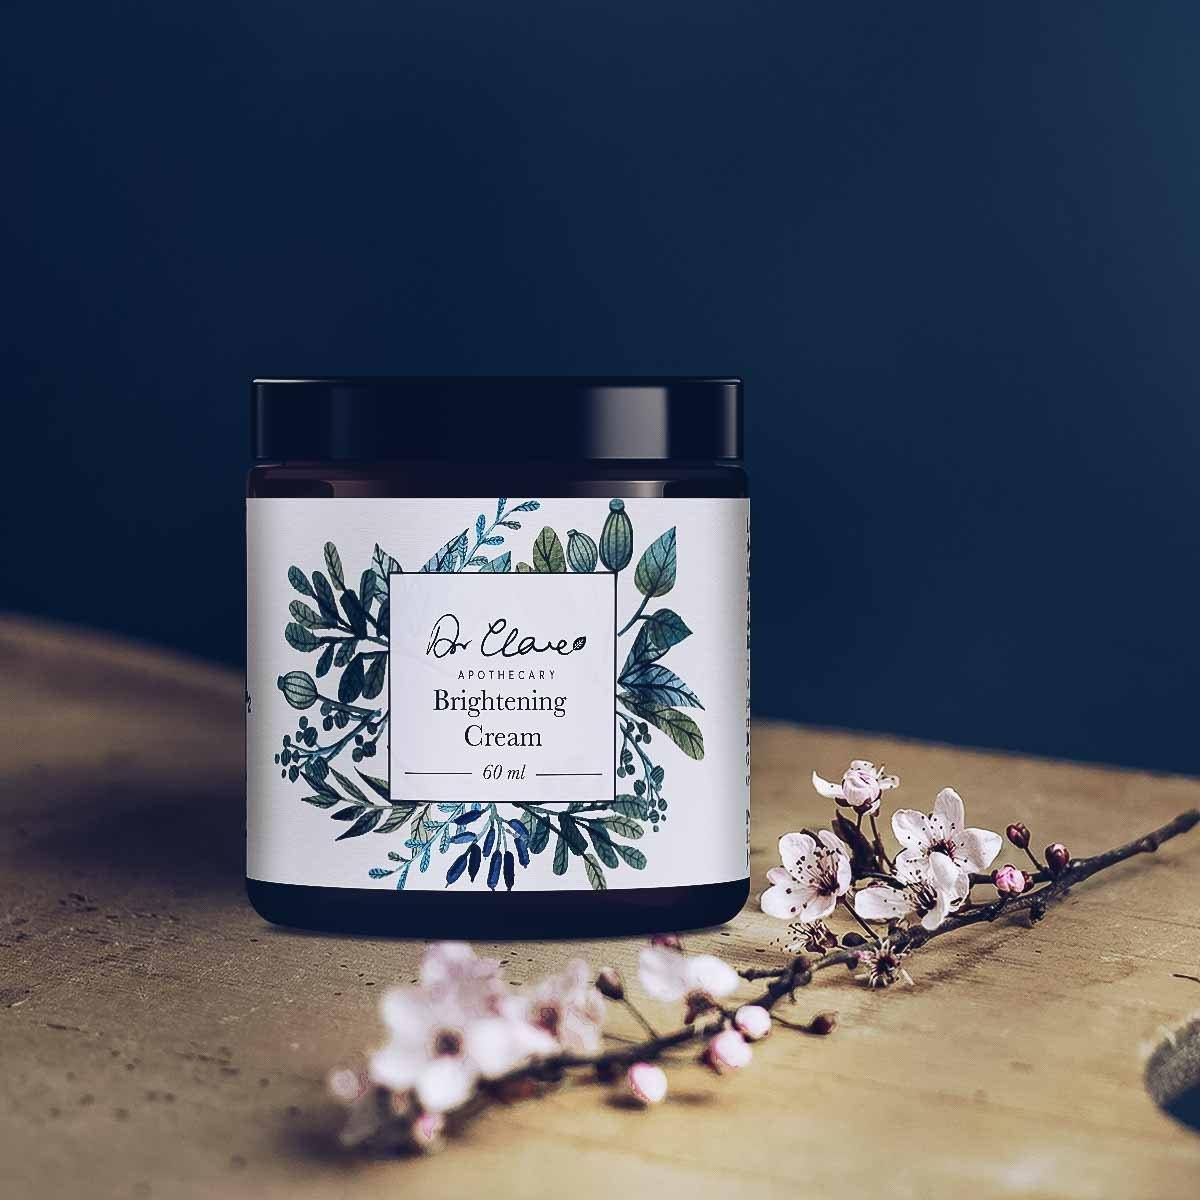 Brightening Liquorice Cream